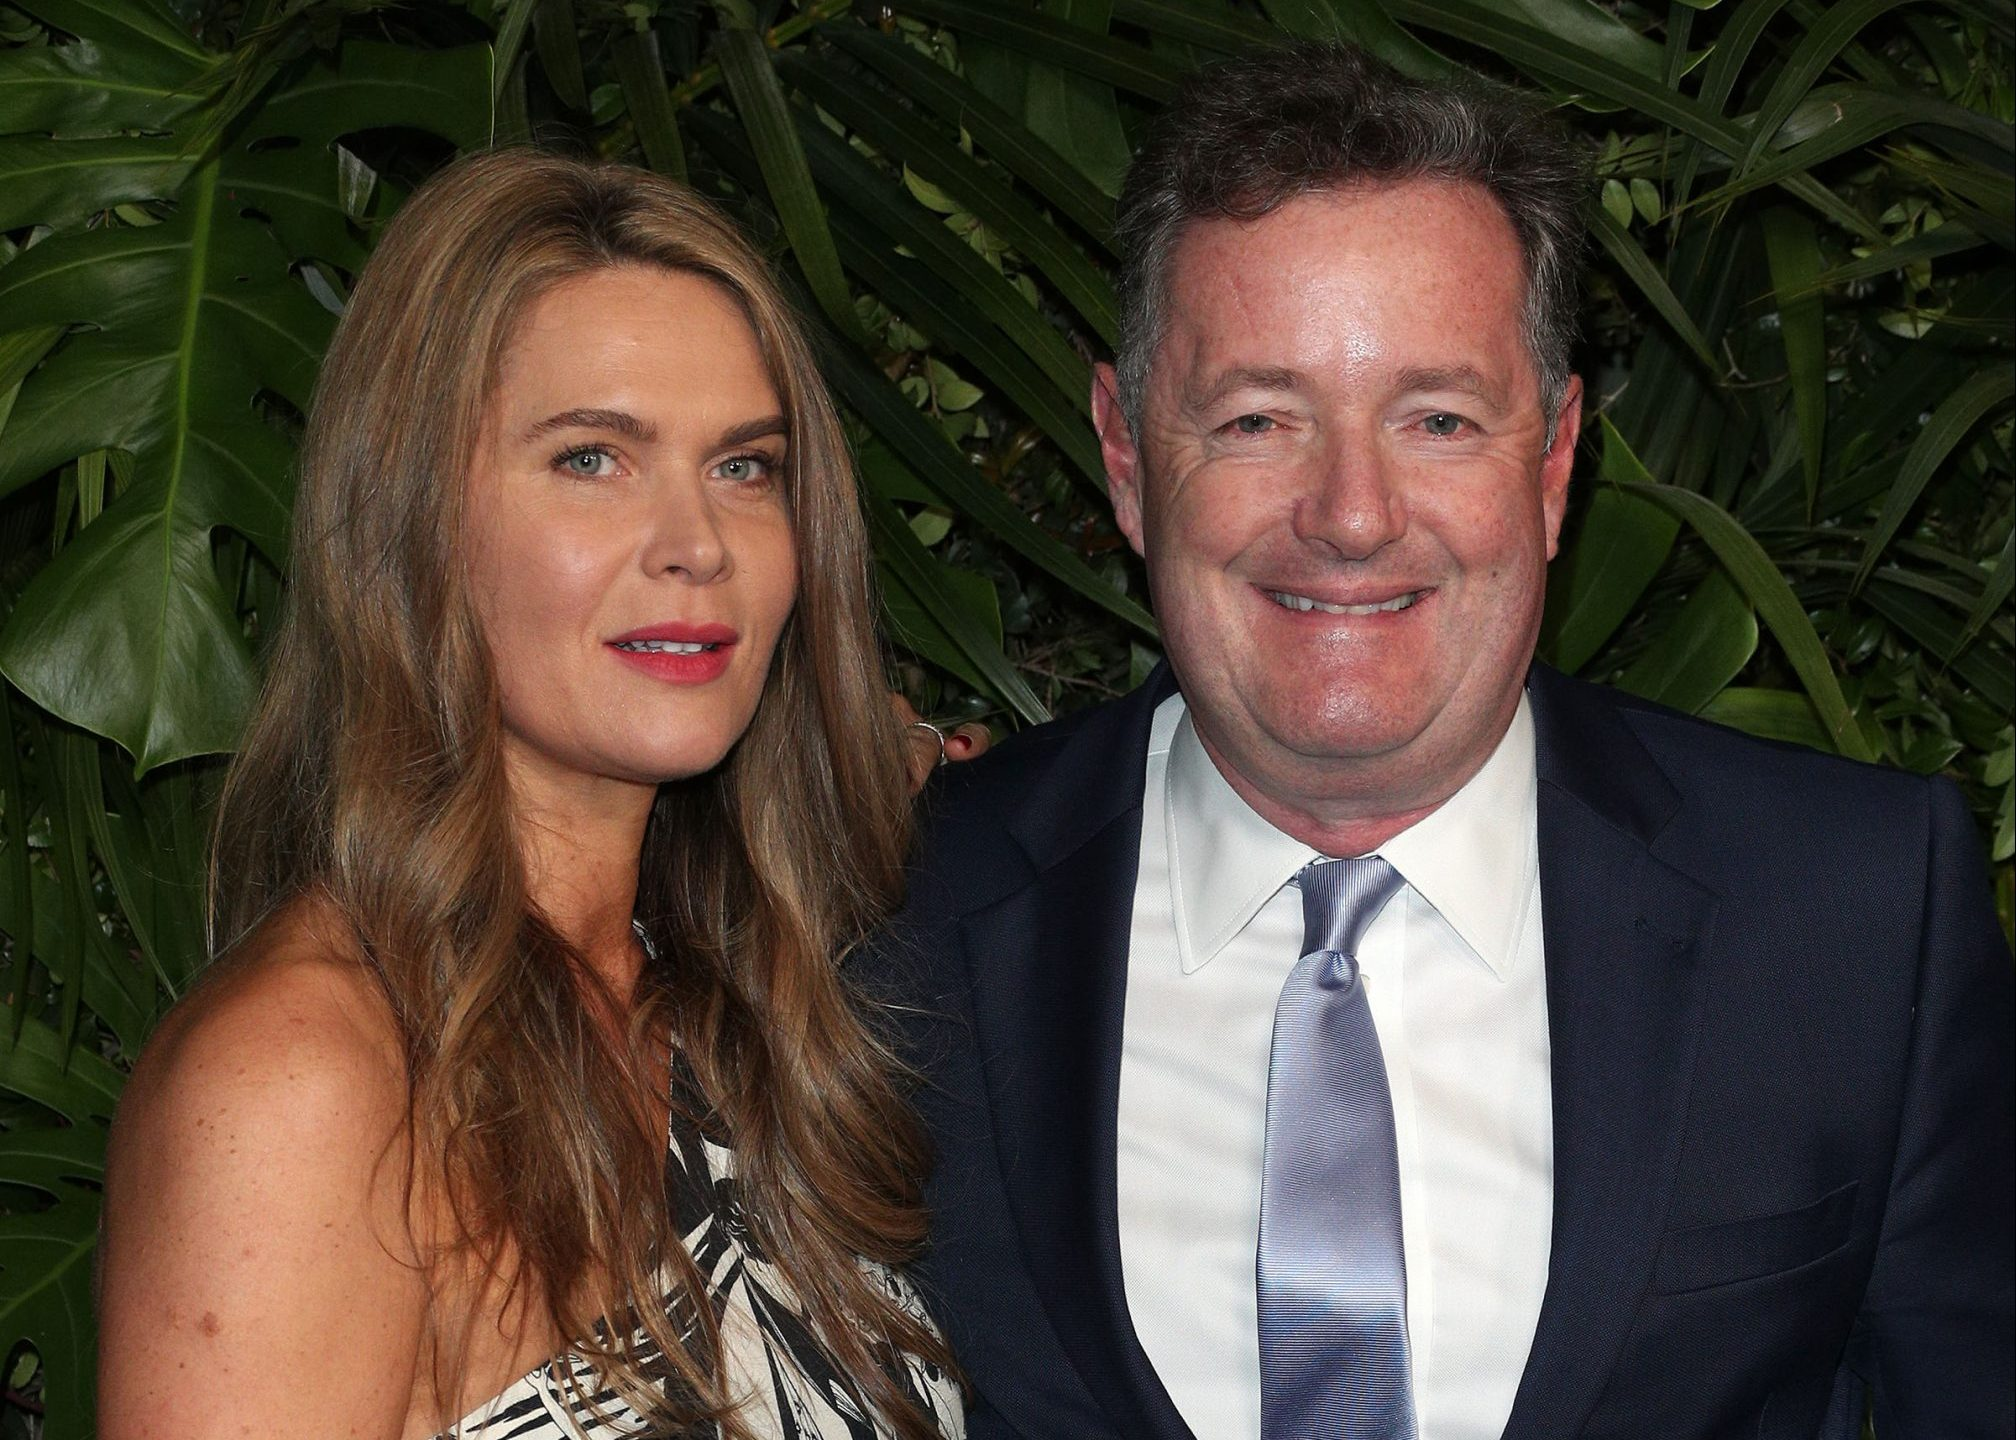 Piers Morgan and wife Celia Walden